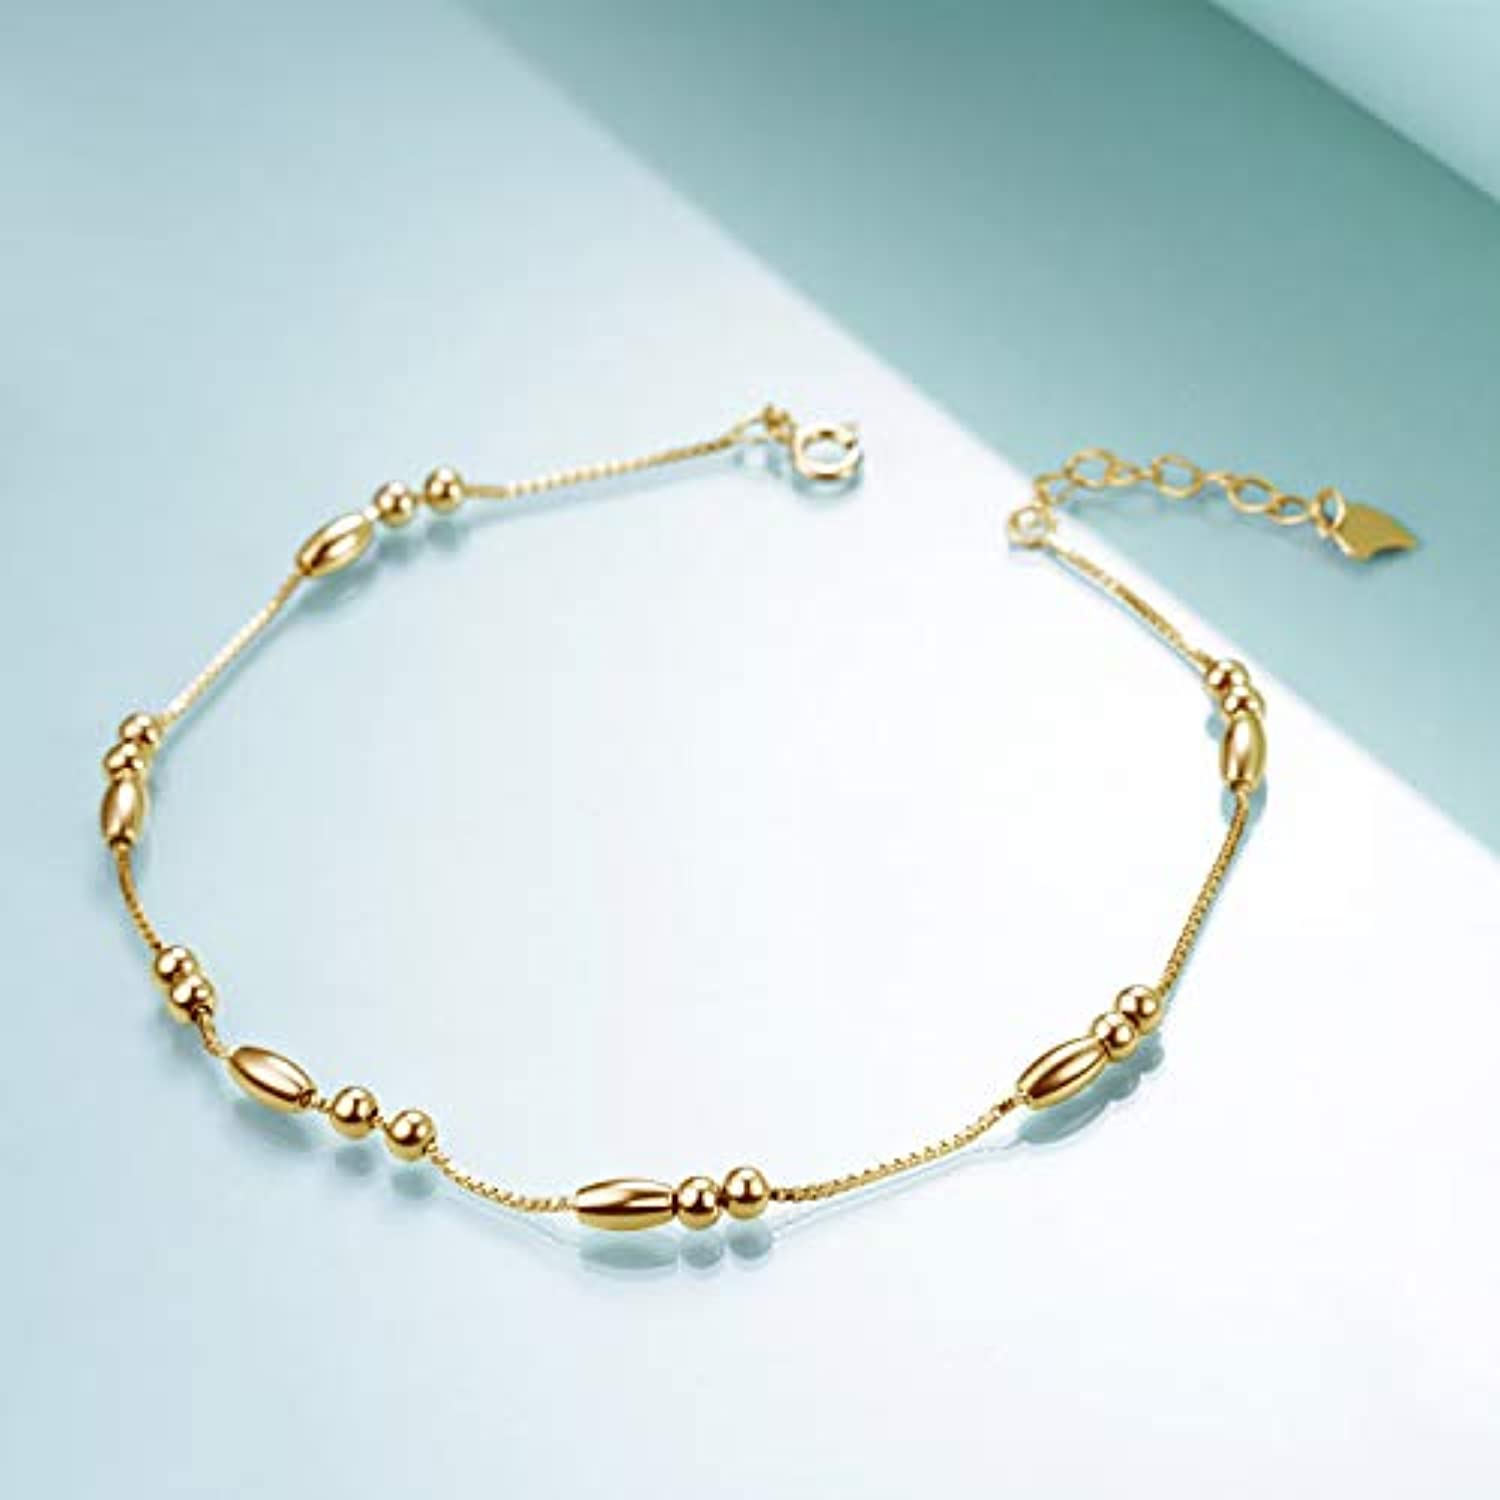 925 Sterling Silver Gold Bead Anklet for Women Girls Gifts